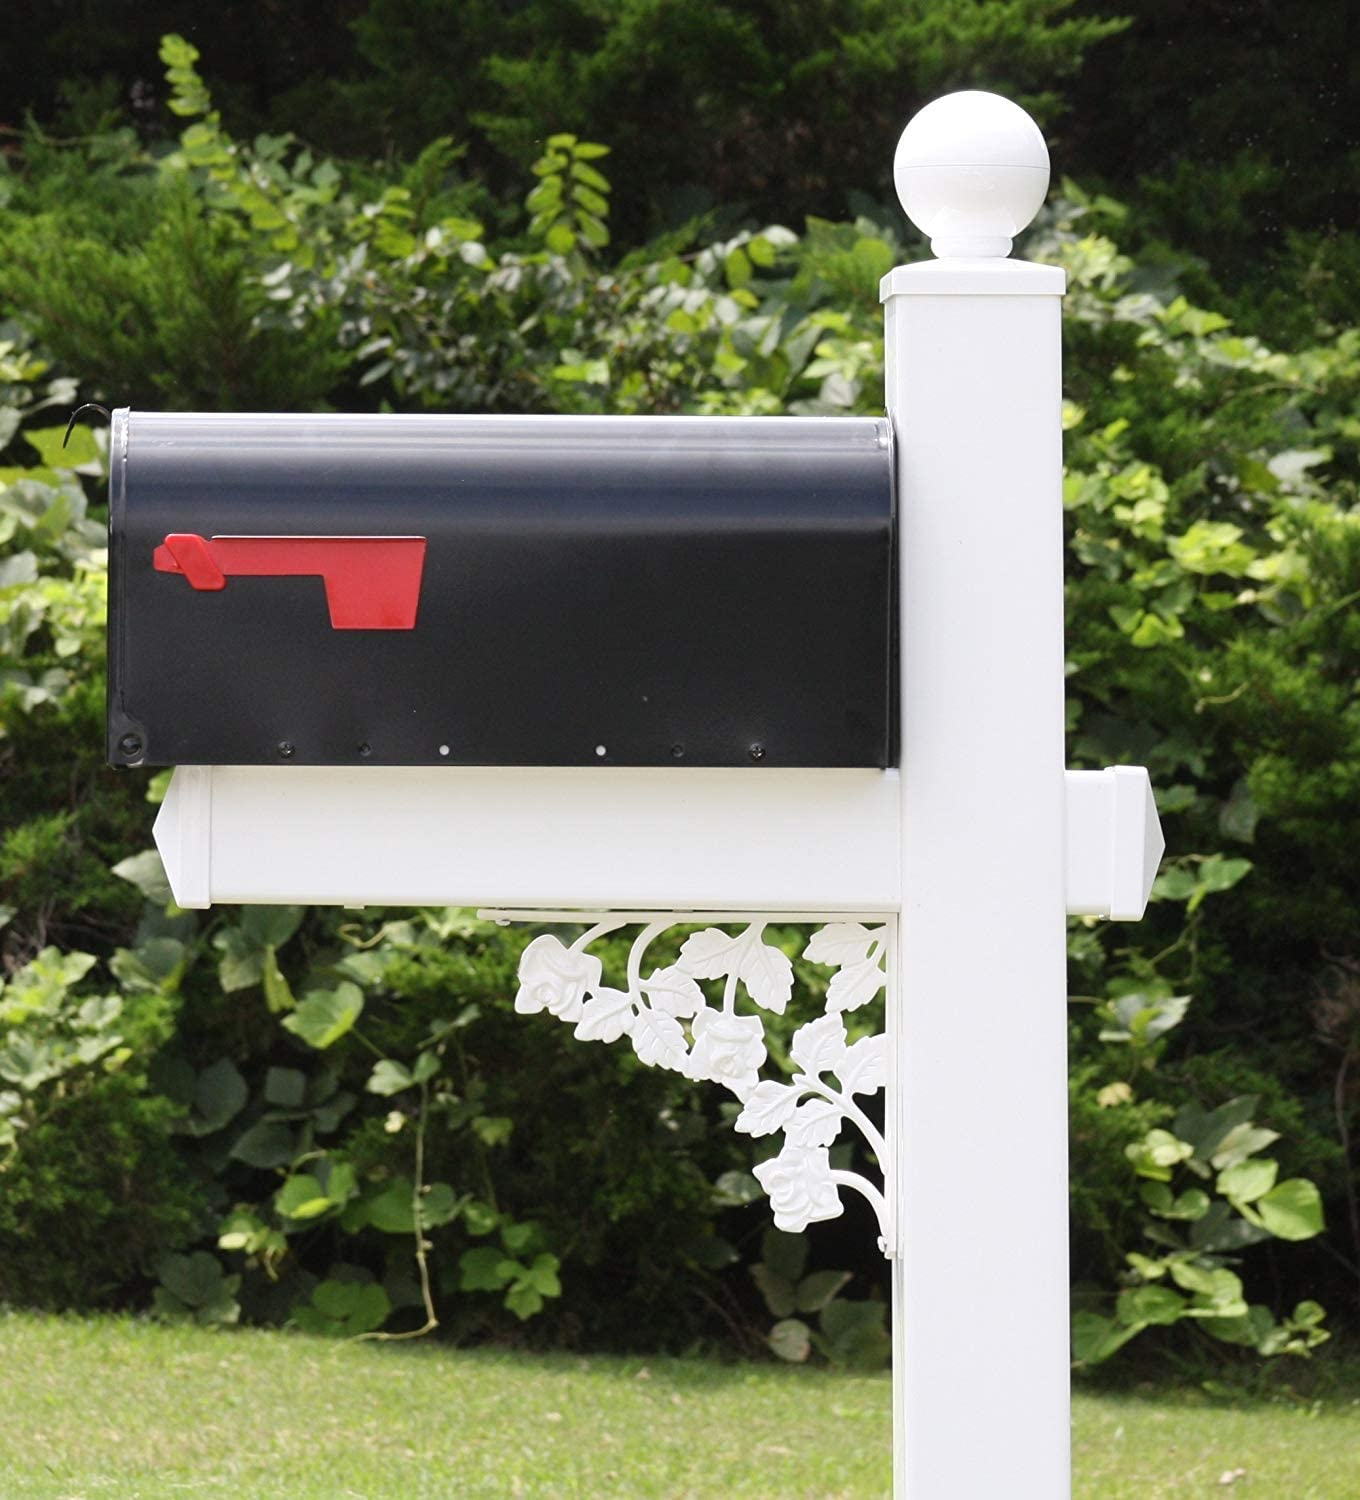 4Ever Products The Roosevelt Vinyl PVC Max Overseas parallel import regular item 74% OFF Ma Mailbox Post Includes